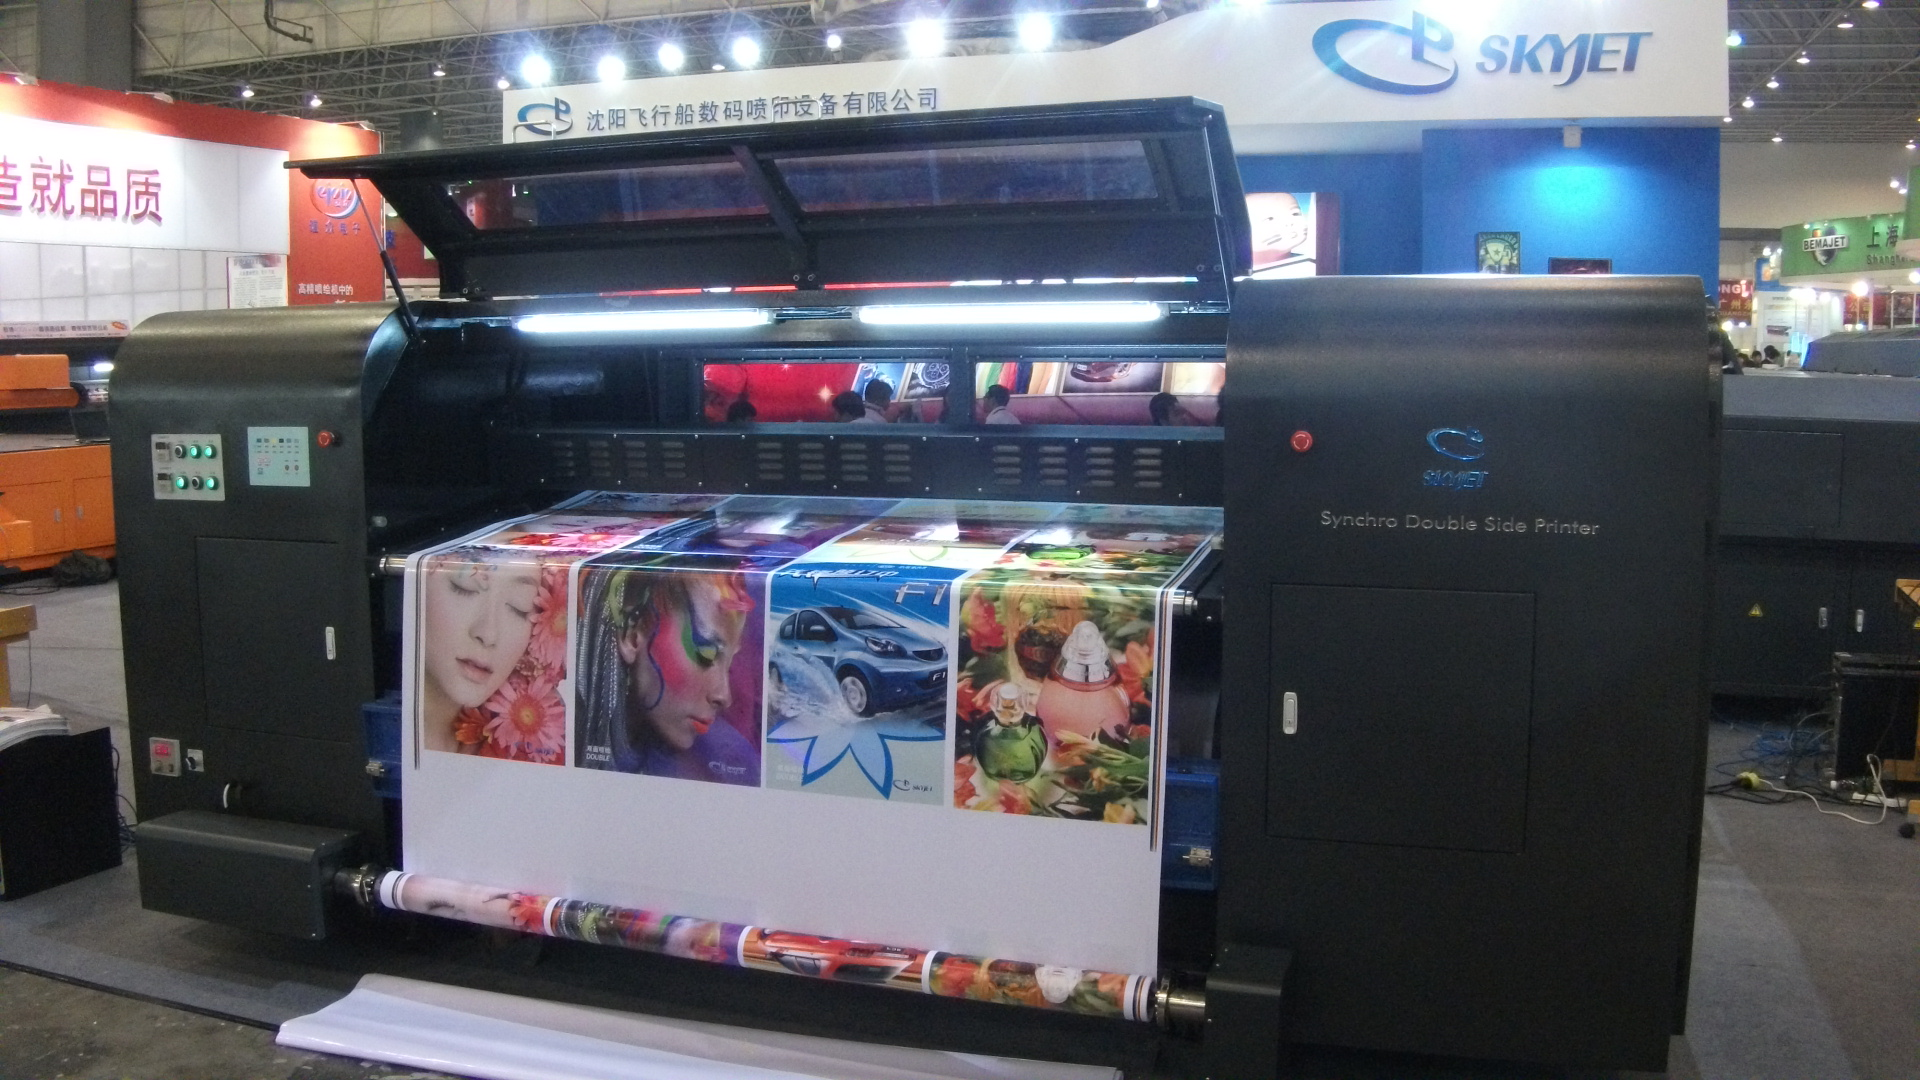 Smart Double Side printer - ISA 2011